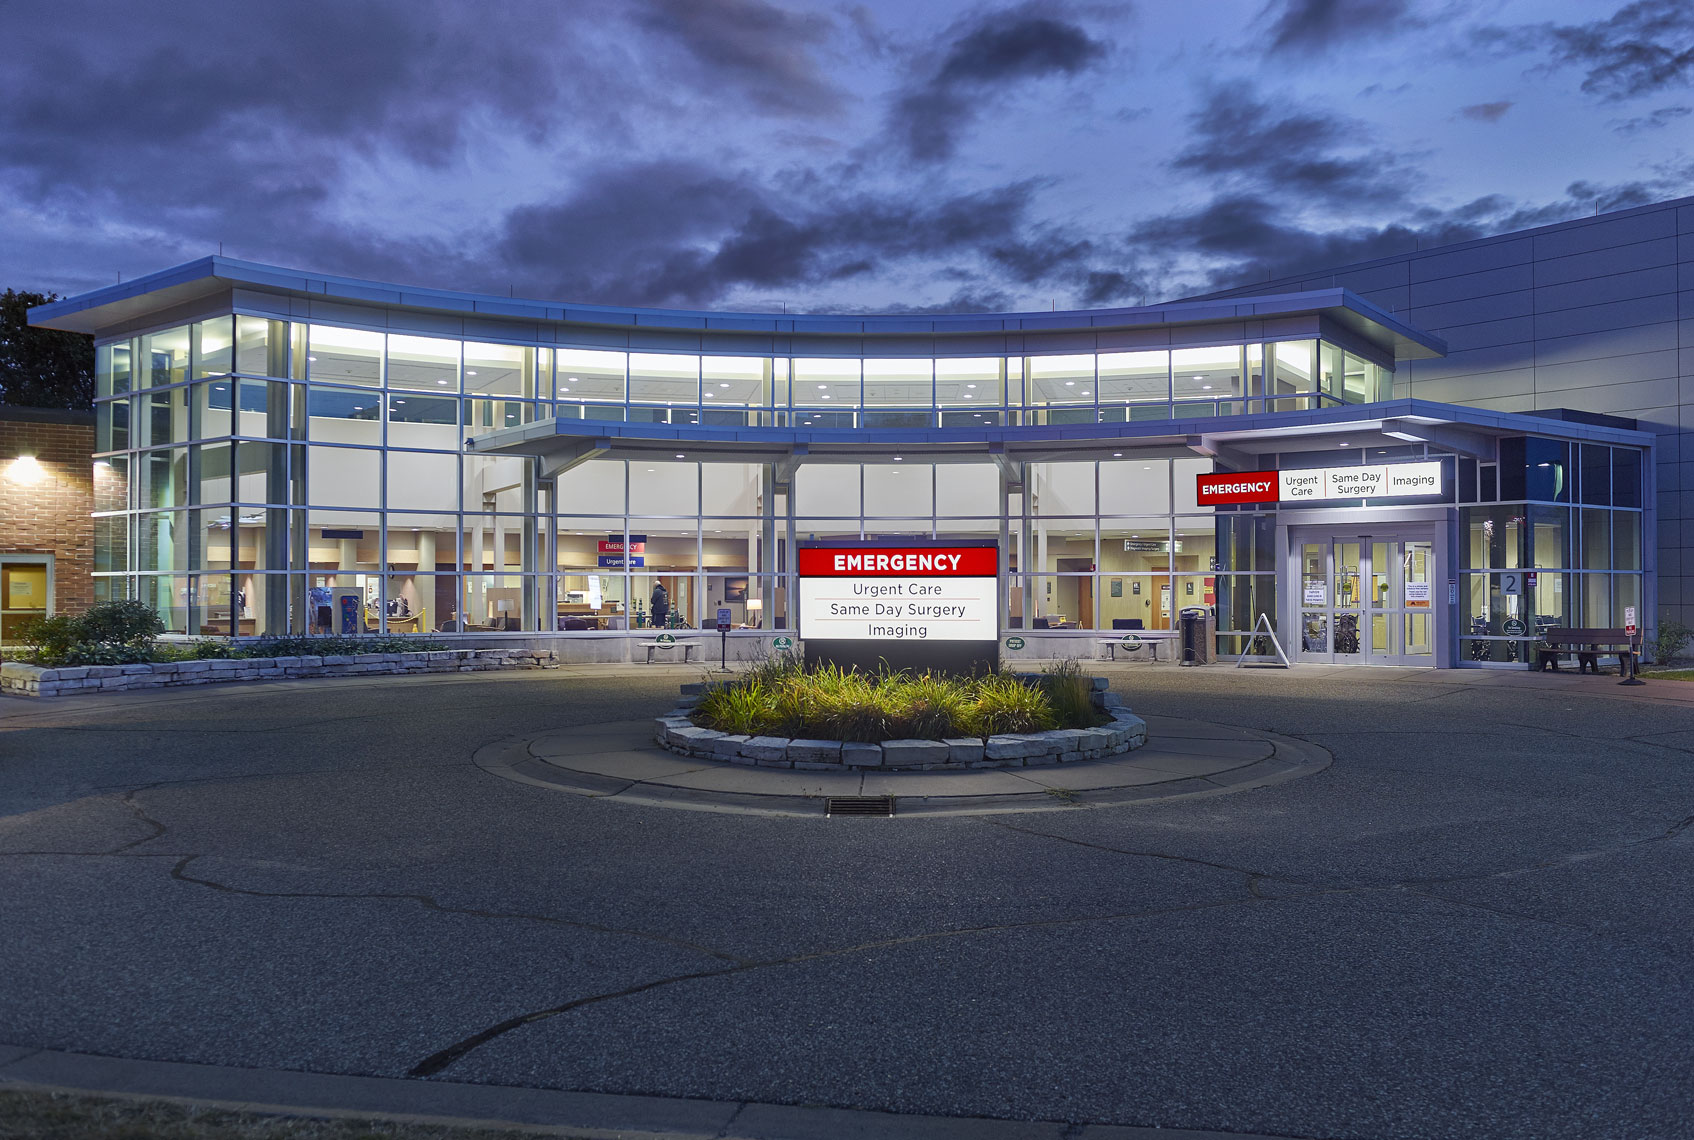 Hospital/emergency room/bld exterior/glass/architectural photography